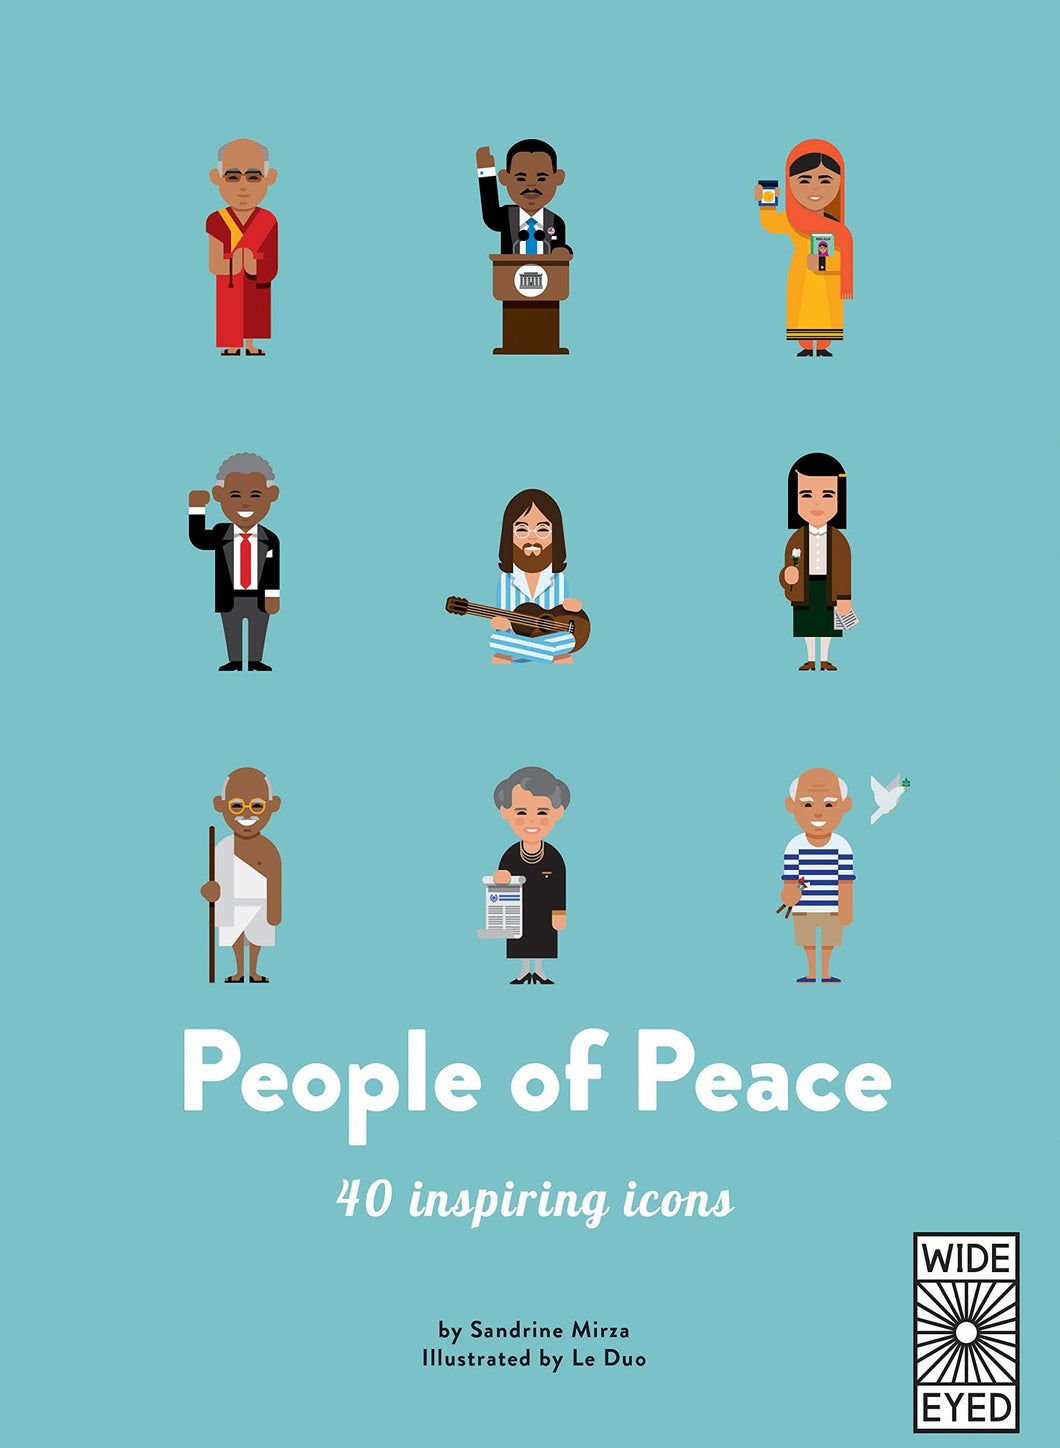 People of Peace: Meet 40 amazing activists (40 Inspiring Icons) by Le Duo, Sandrine Mirza: 9781786031488 - Me Books Asia Store